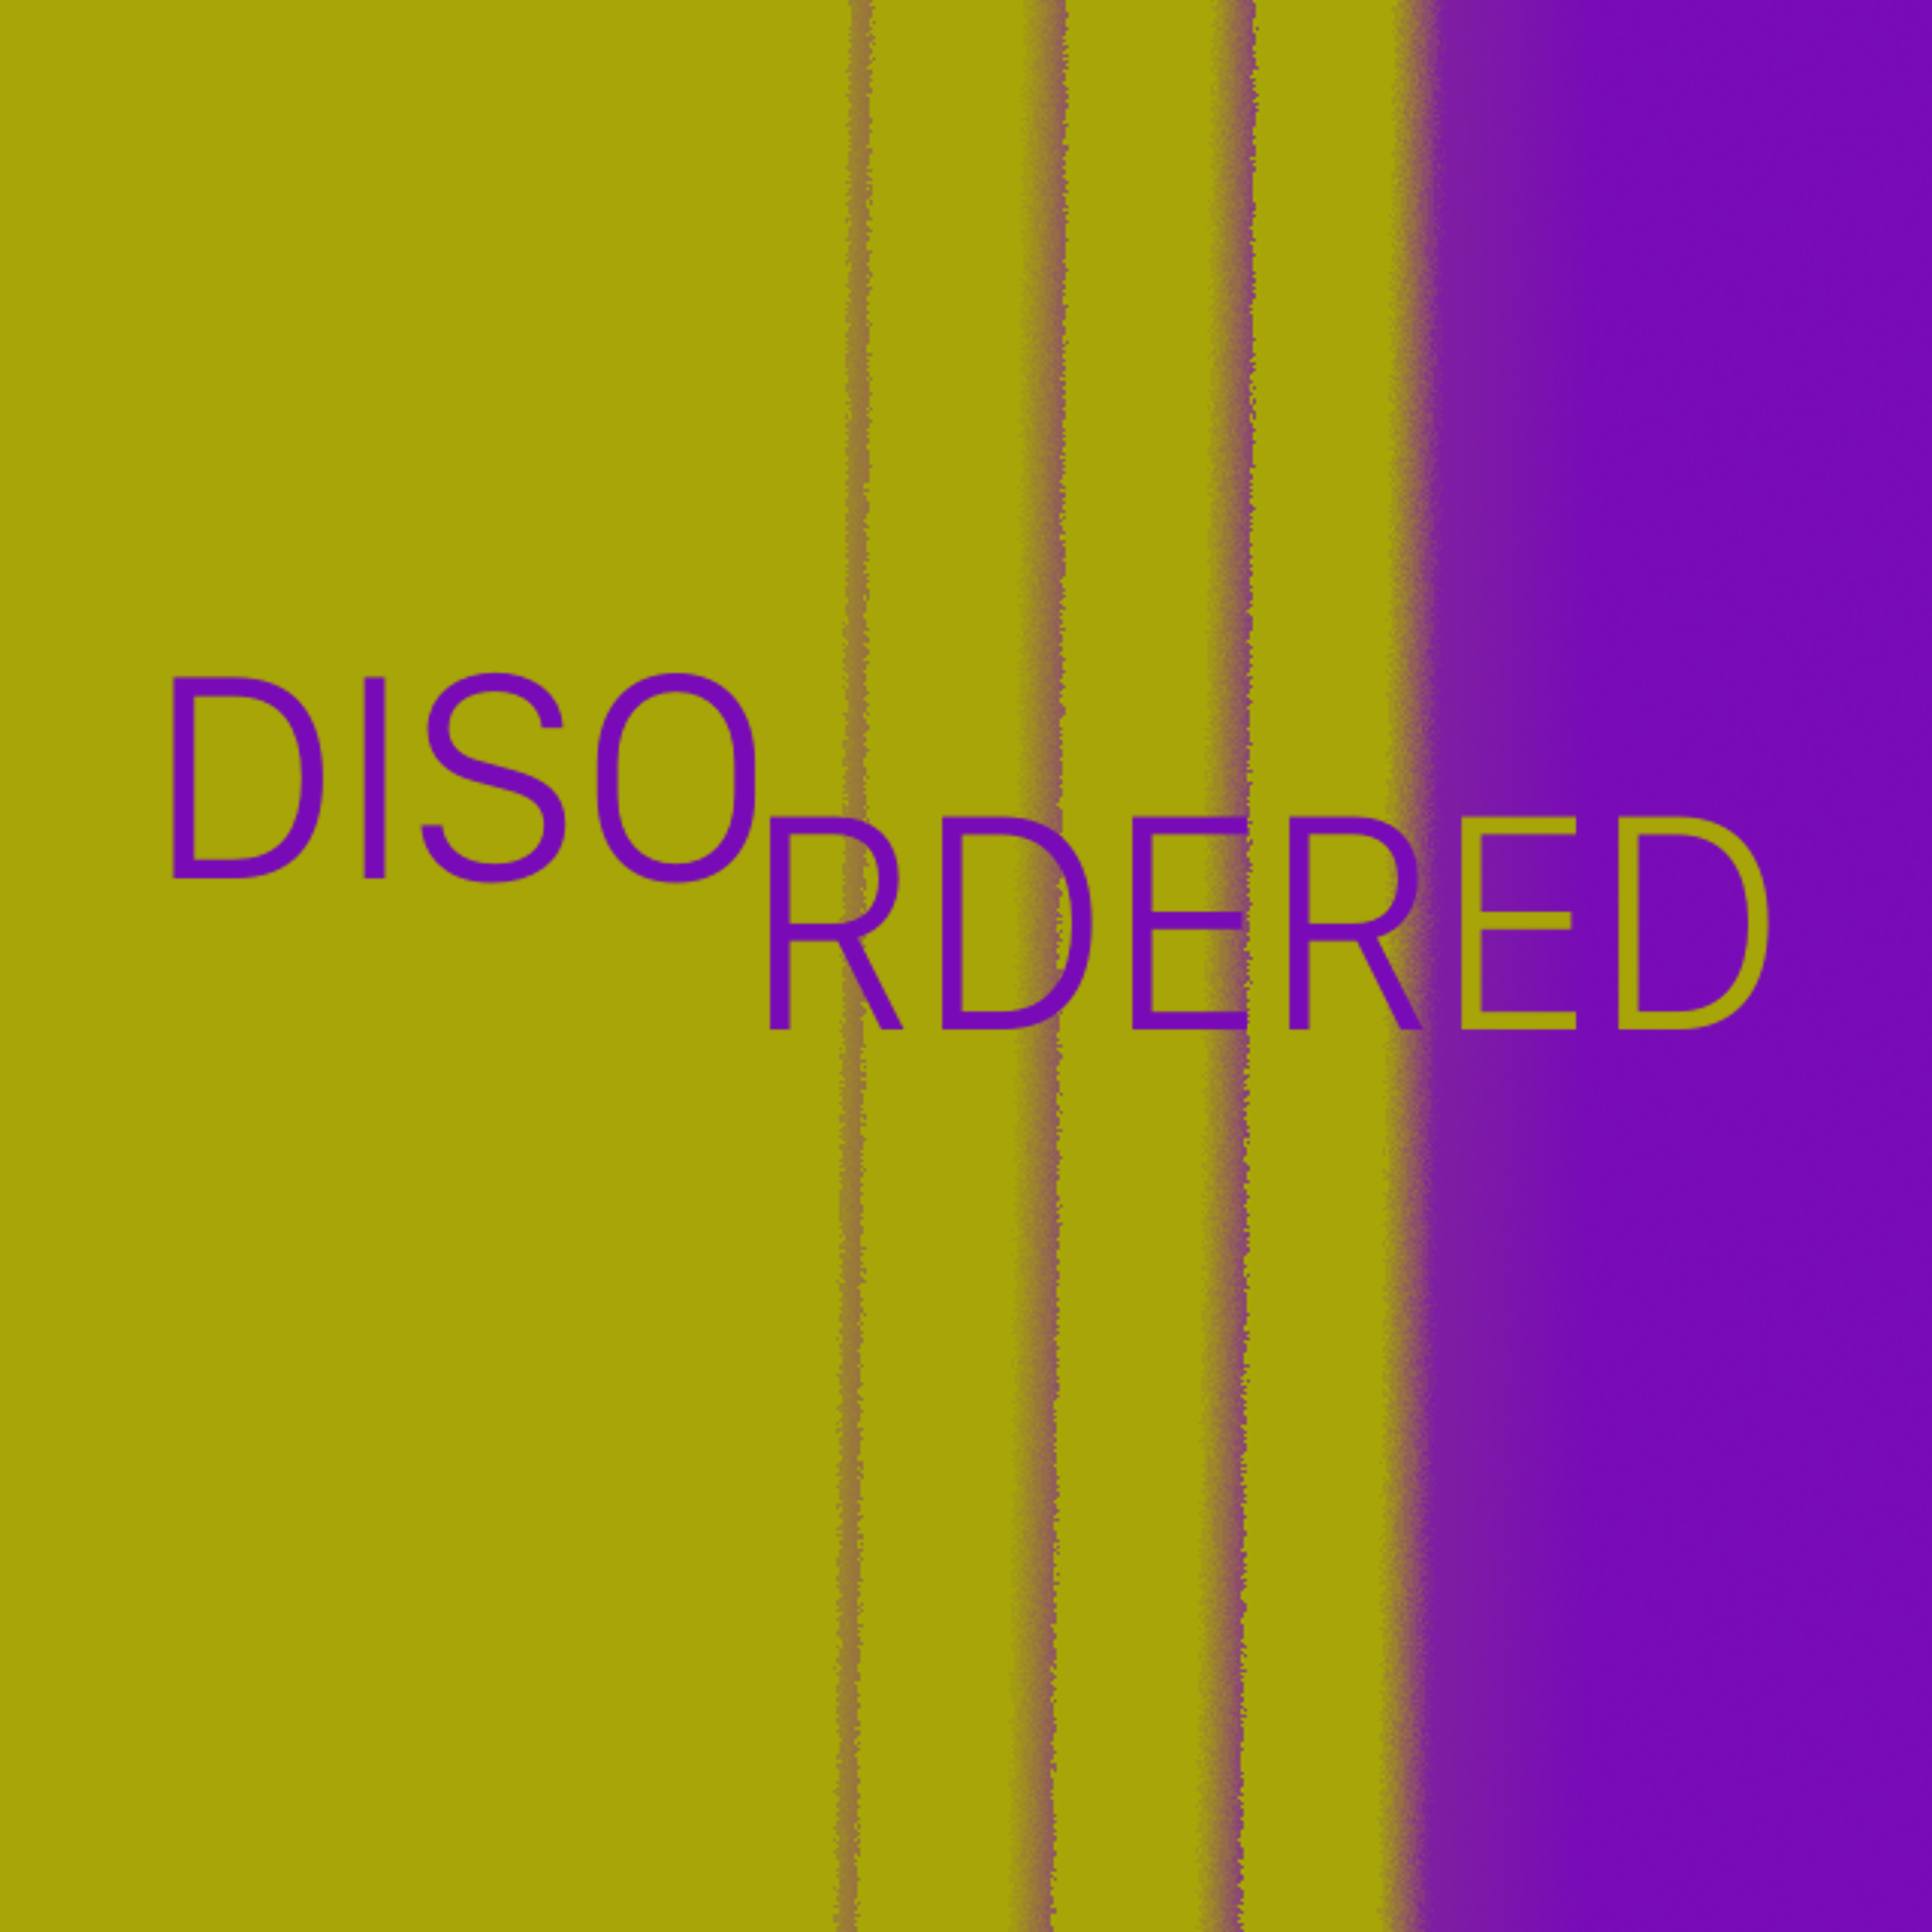 Disordered show art